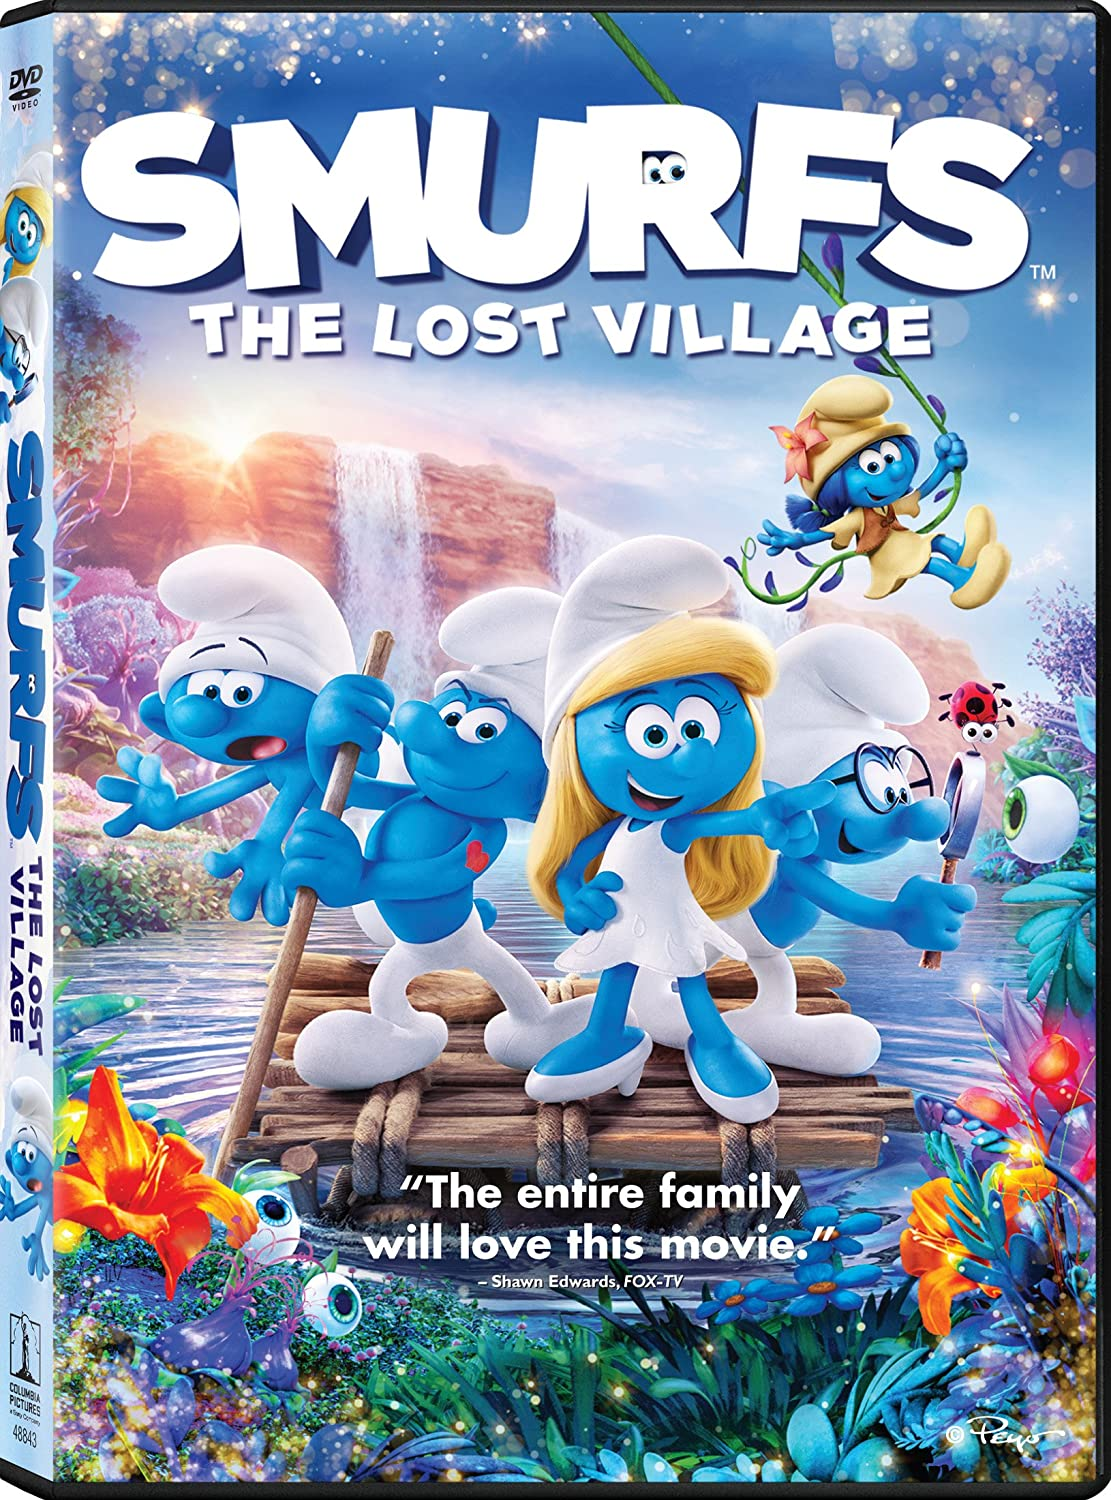 Amazon Com Smurfs The Lost Village Kelly Asbury Jordan Kerner Mary Ellen Bauder Andrews Sony Pictures Animation Inc Movies Tv